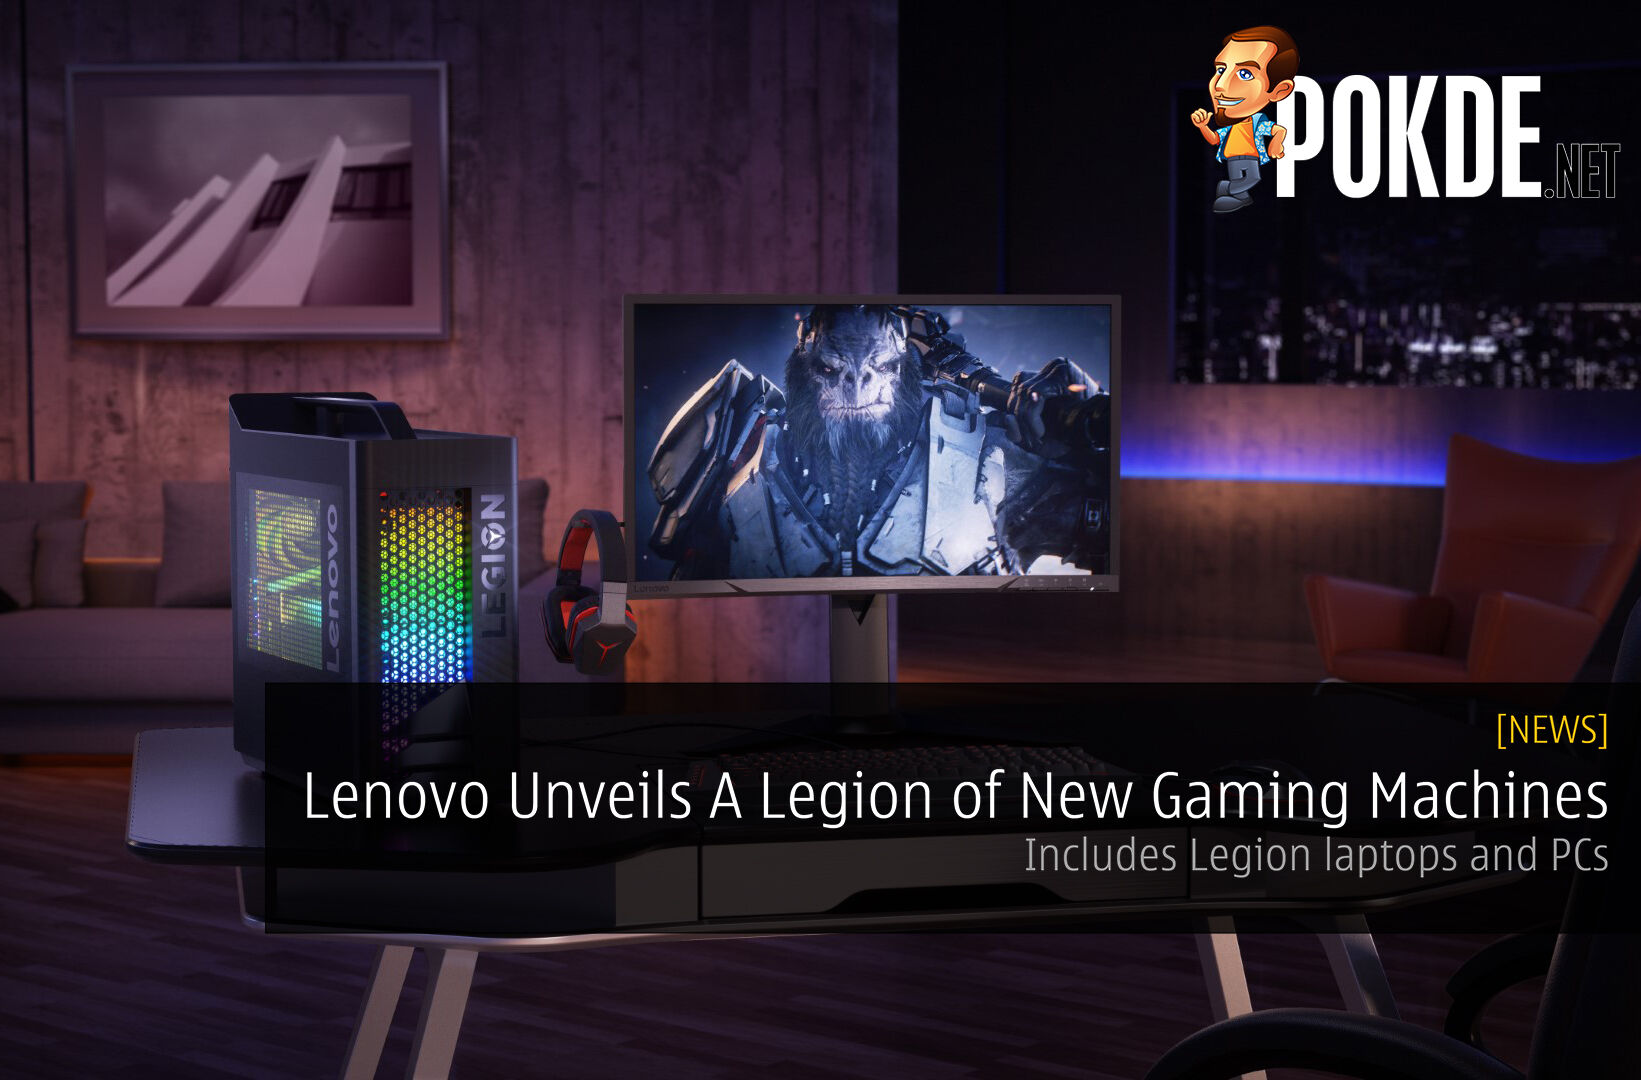 Lenovo Unveils A Legion of New Gaming Machines - Includes Legion laptops and PCs 20